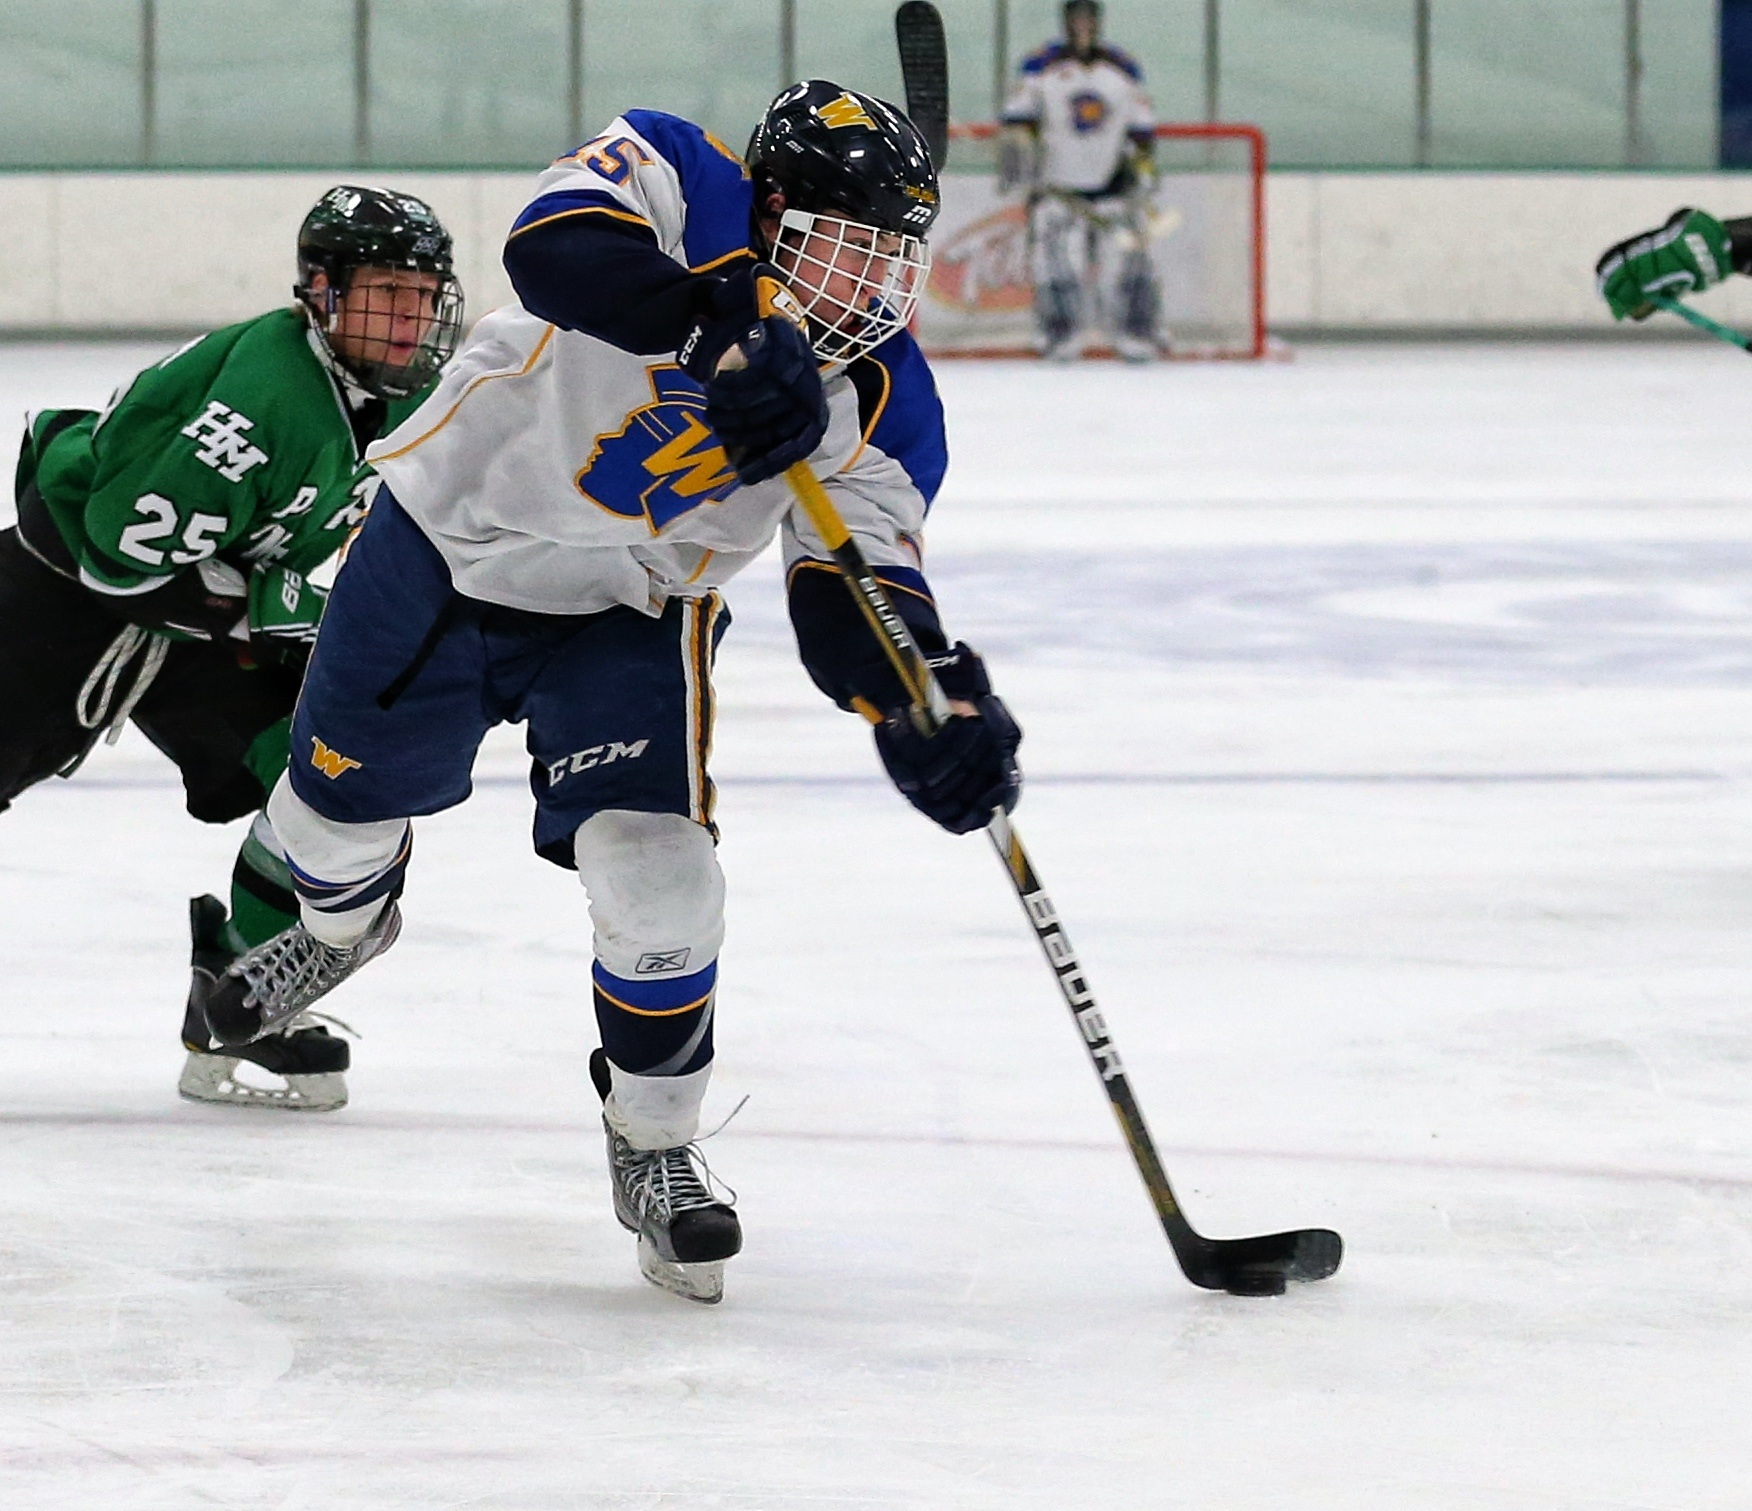 MN H.S.: Trojans Top Hill-Murray - Matthew Freytag Scores Two Goals As Wayzata Takes Down No. 1-ranked Pioneers